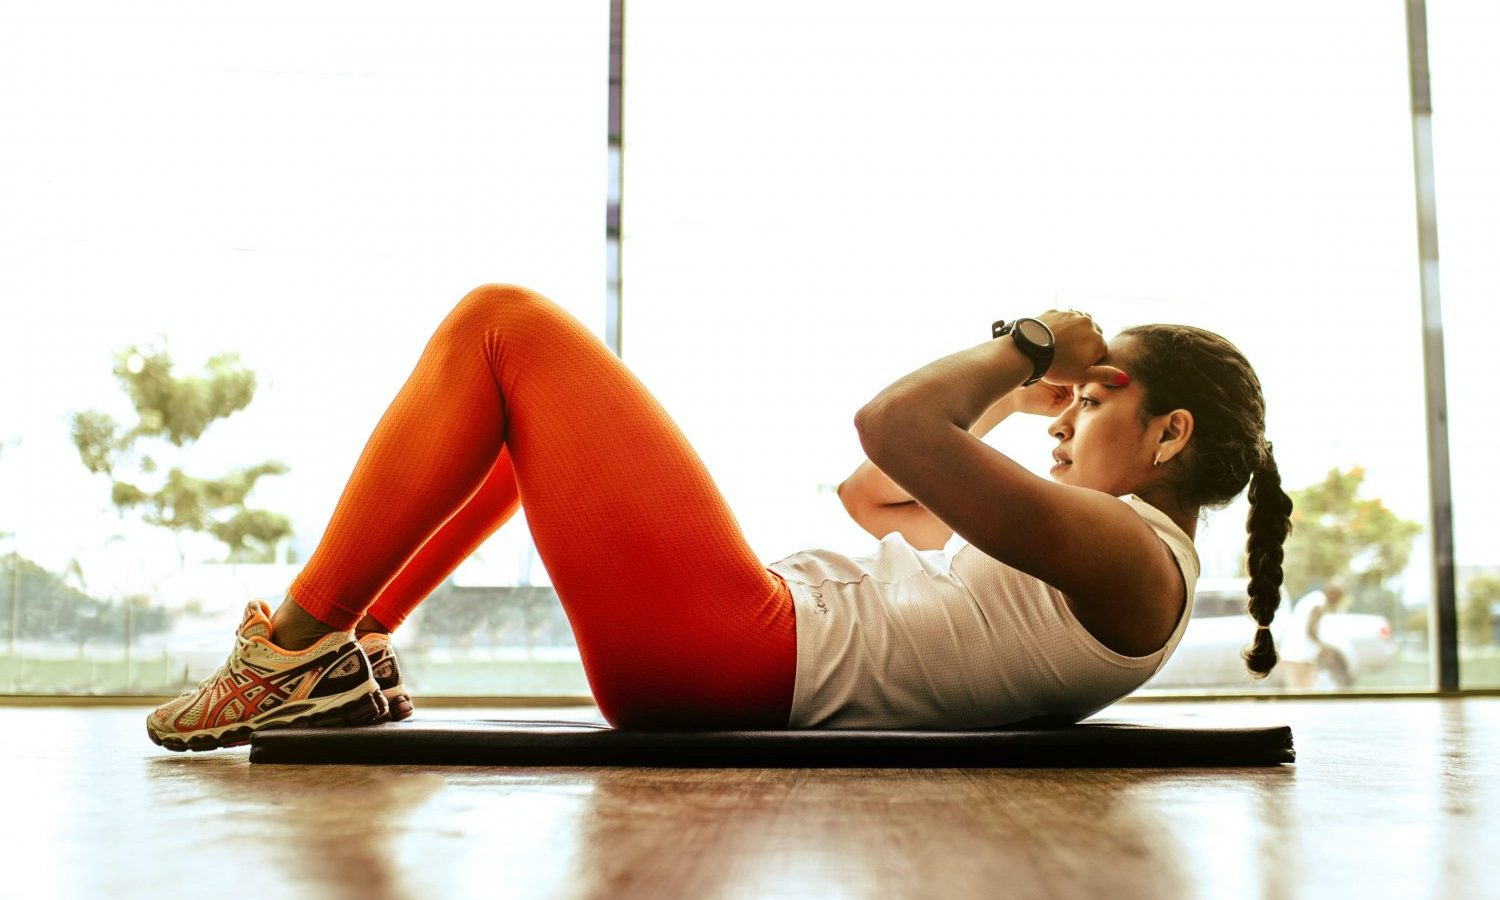 How To Pump Yourself Up For Home Workouts